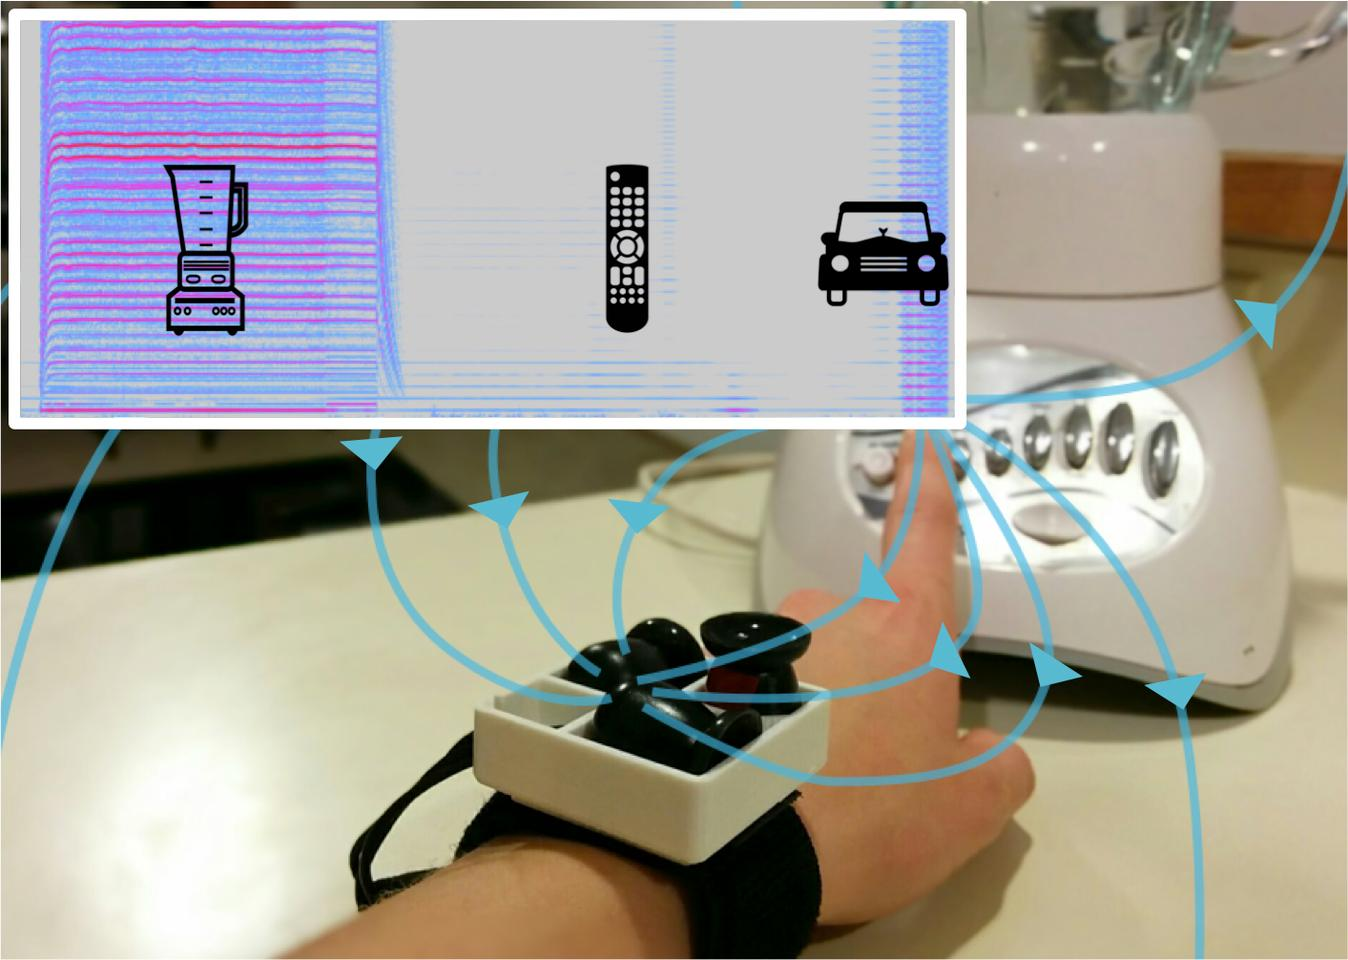 The MagnifiSense prototype detects what electronic devices and motor vehicles an individual is interacting from their unique electromagnetic signatures